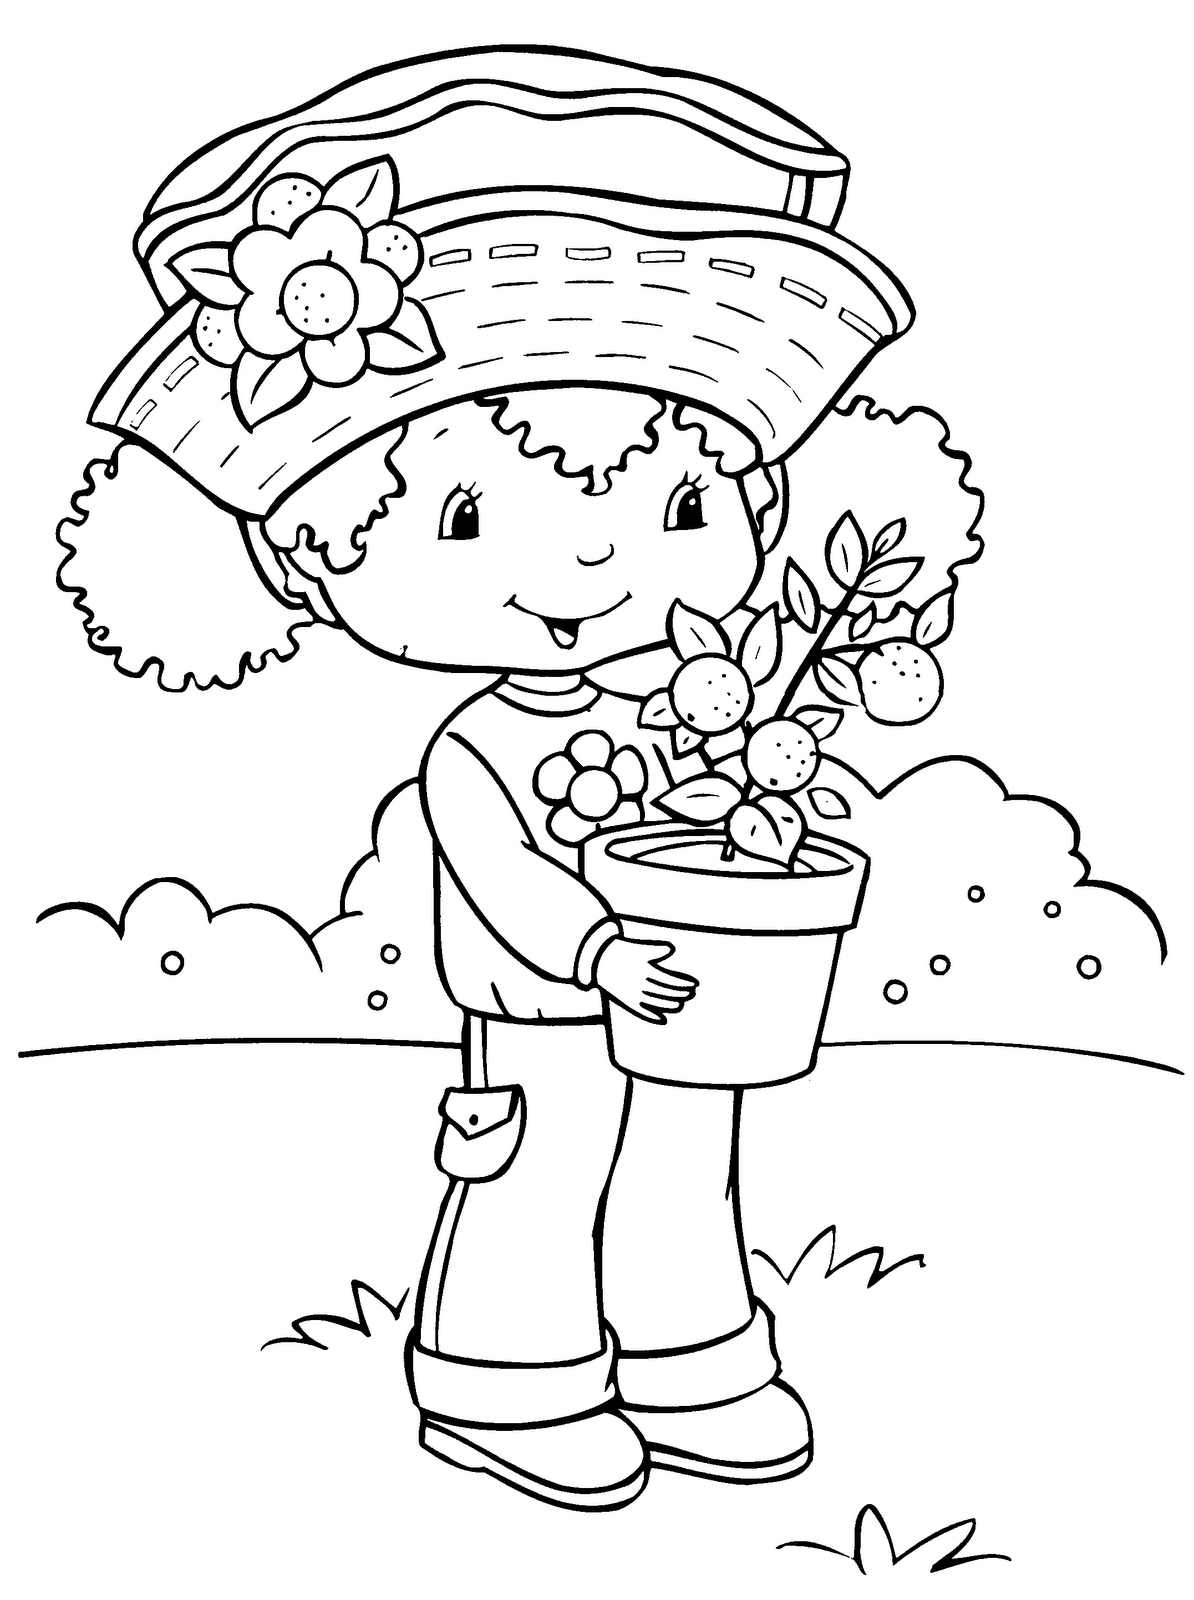 Give Thanks Coloring Page - Strawberry Shortcake Coloring Pages